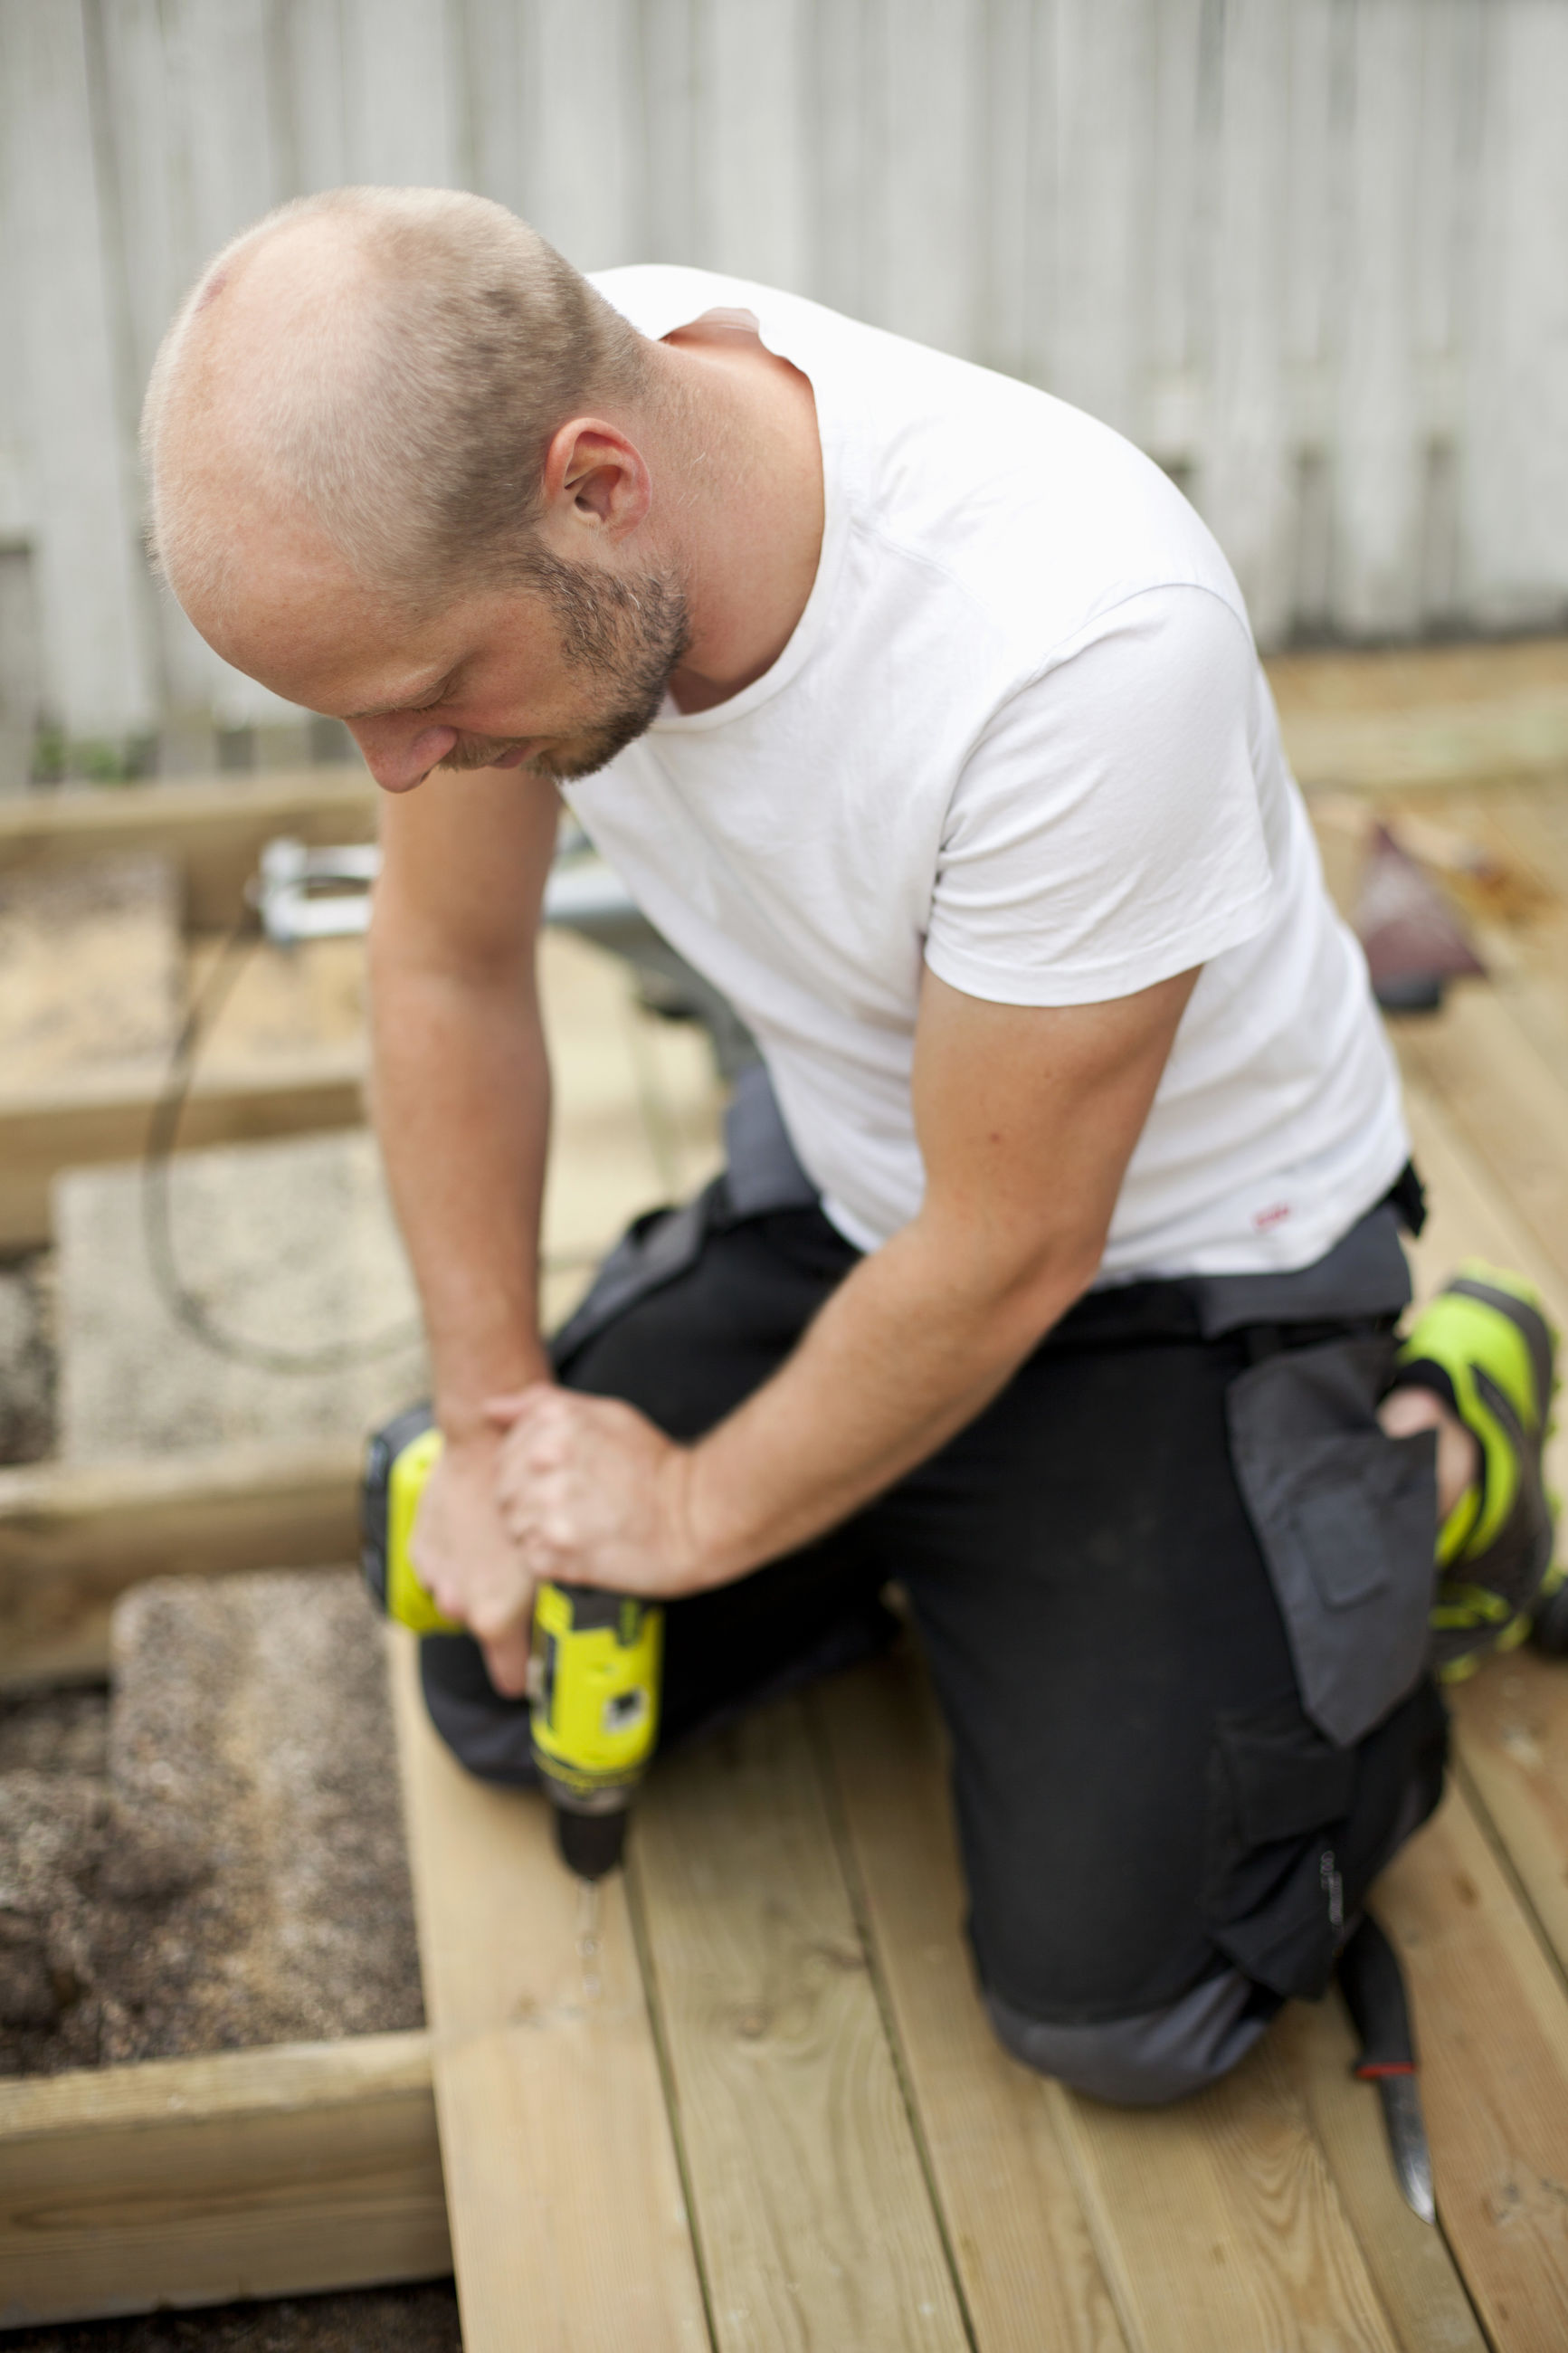 FULL LENGTH OF MAN WORKING WITH WOODEN POST AT HOME